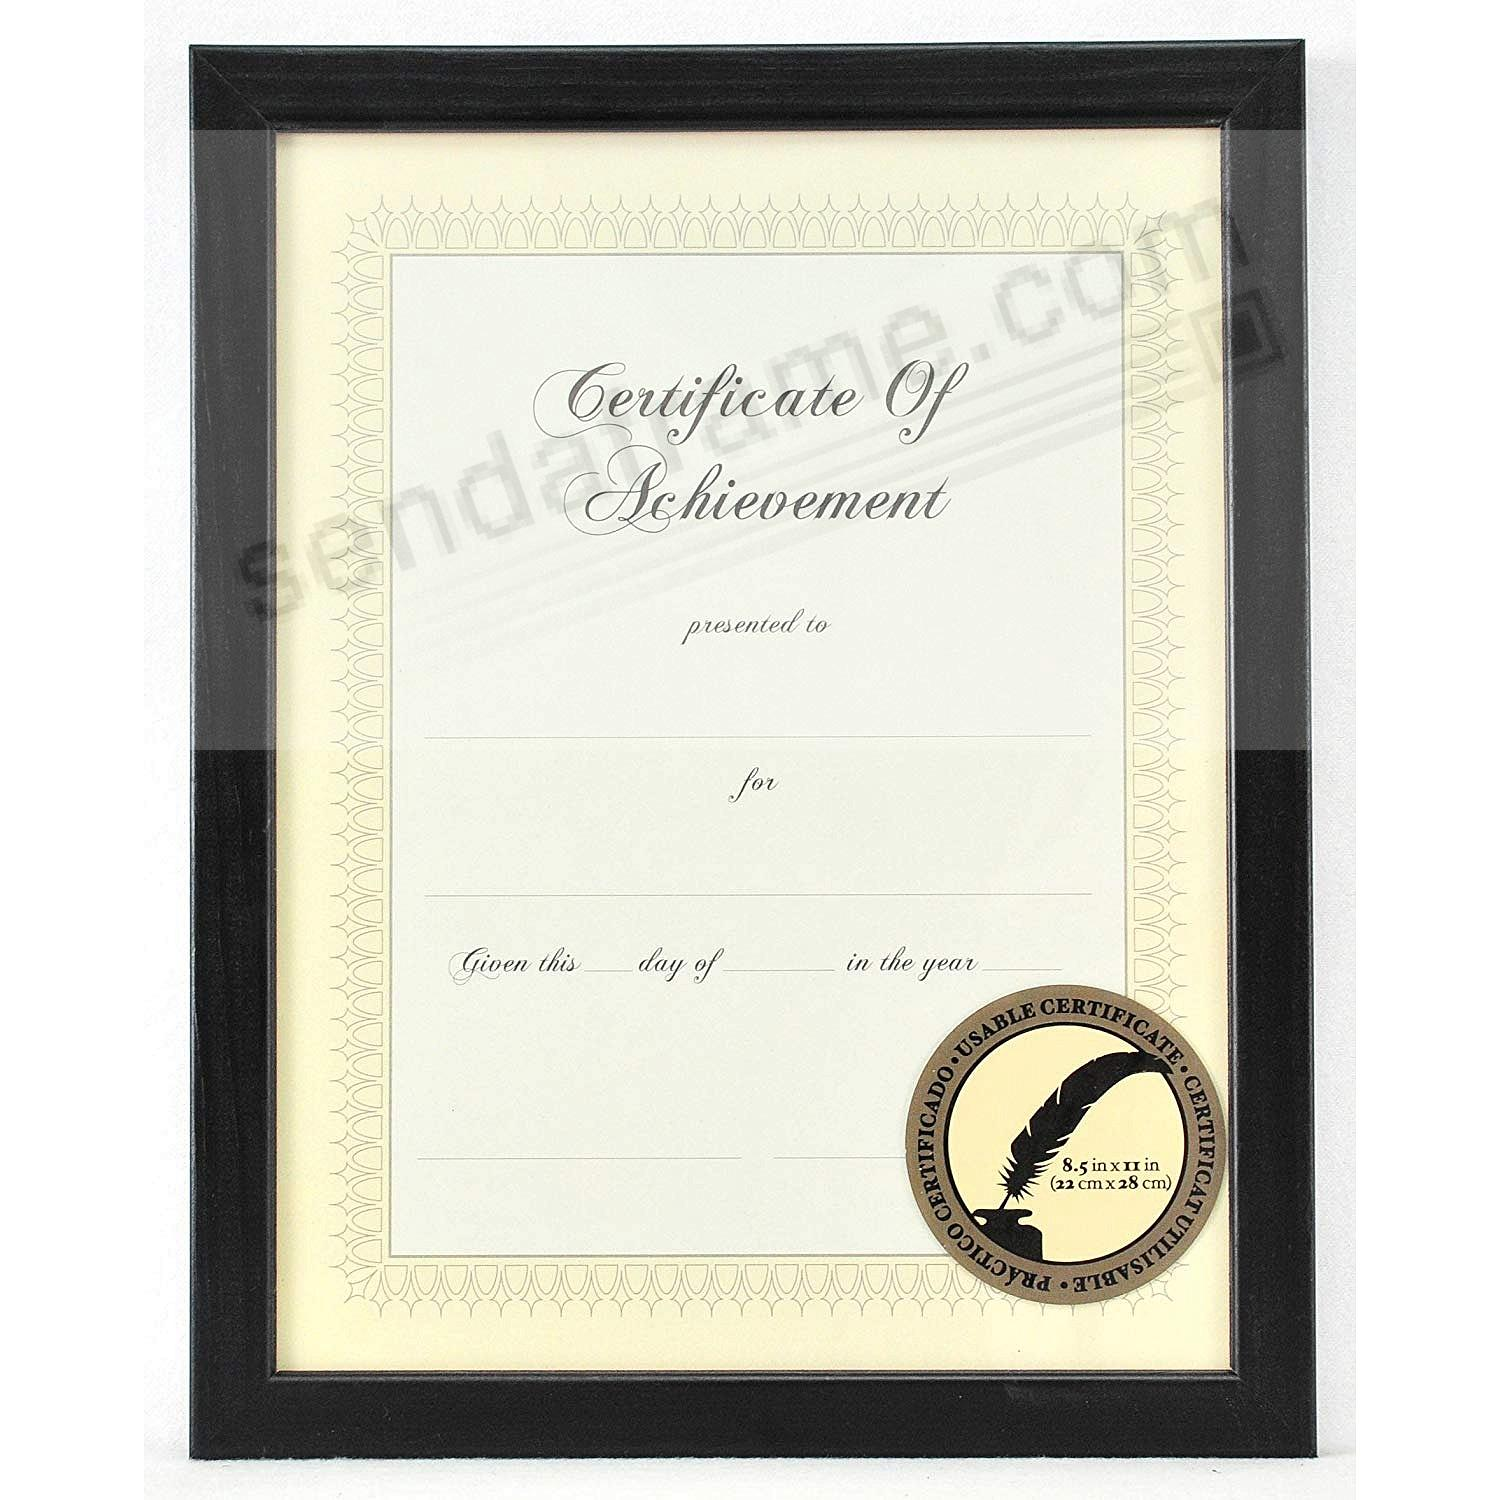 Black-stain Certificate 11x8½ frame by Gallery Solutions®